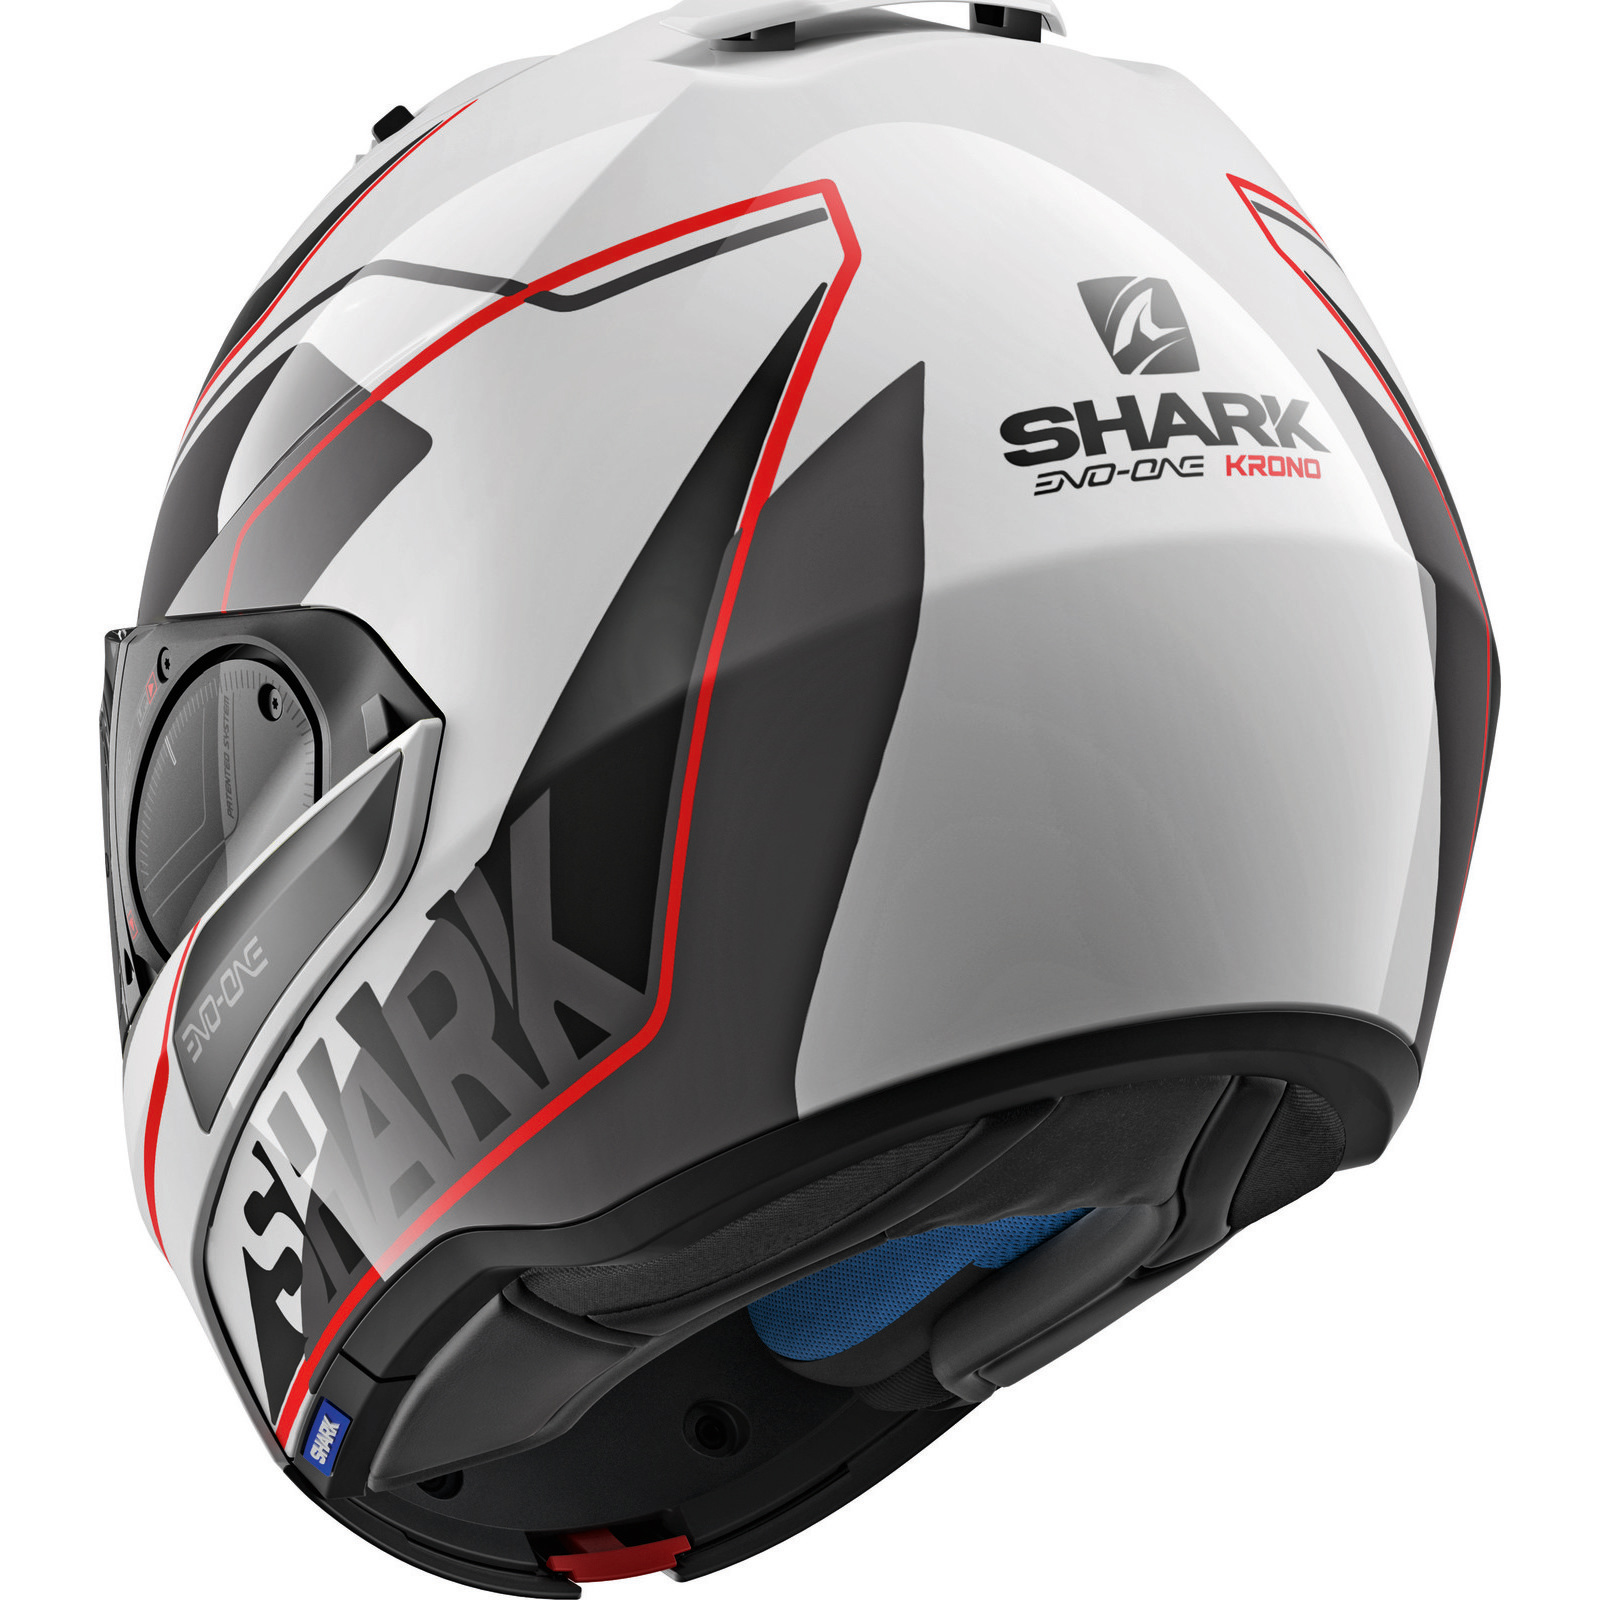 shark evo one 2 krono white red flip front motorcycle helmet wkr bike sun visor ebay. Black Bedroom Furniture Sets. Home Design Ideas